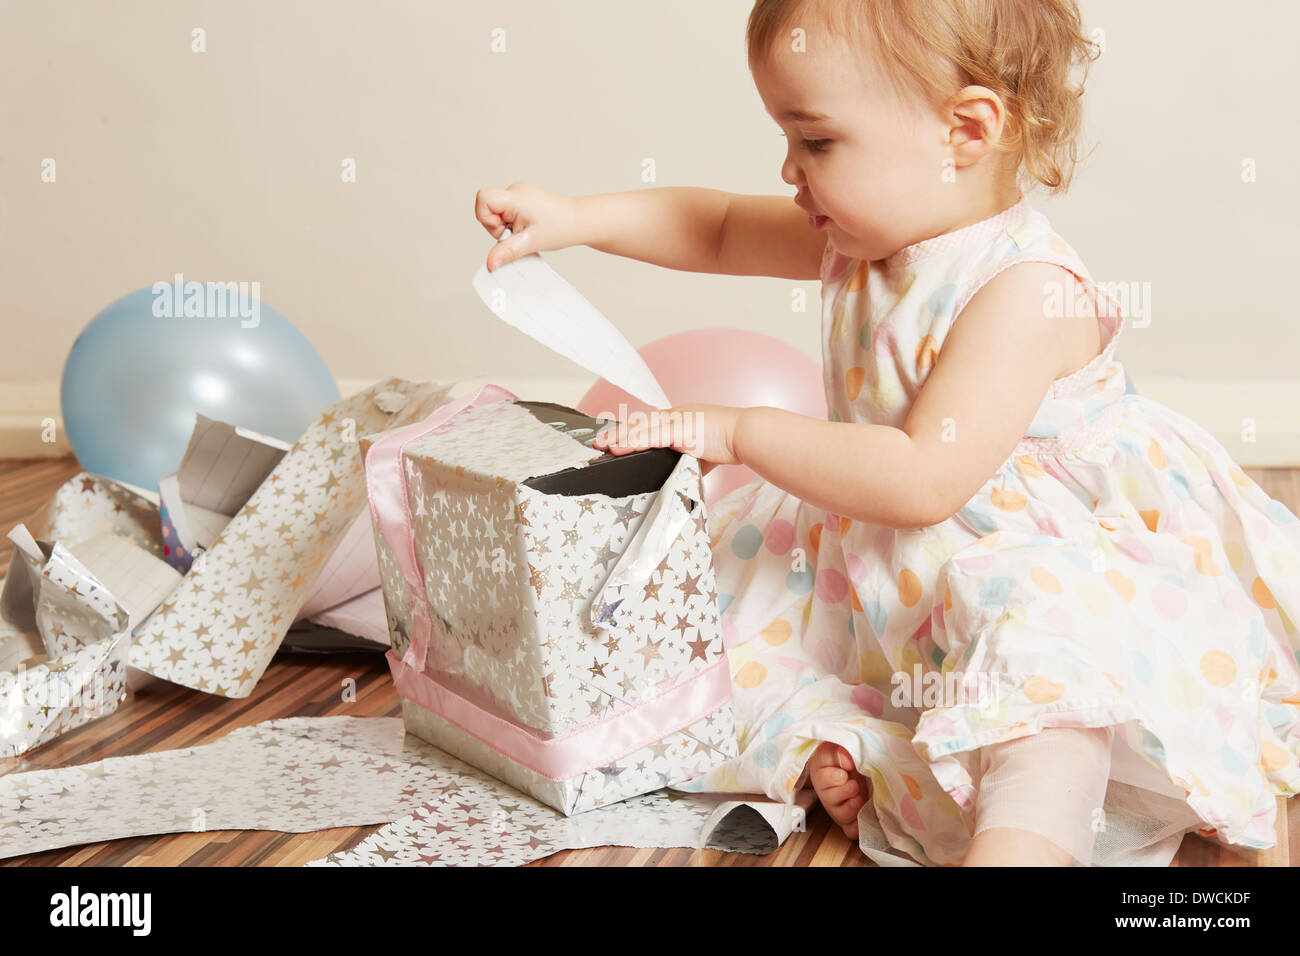 Toddler girl opening birthday present - Stock Image